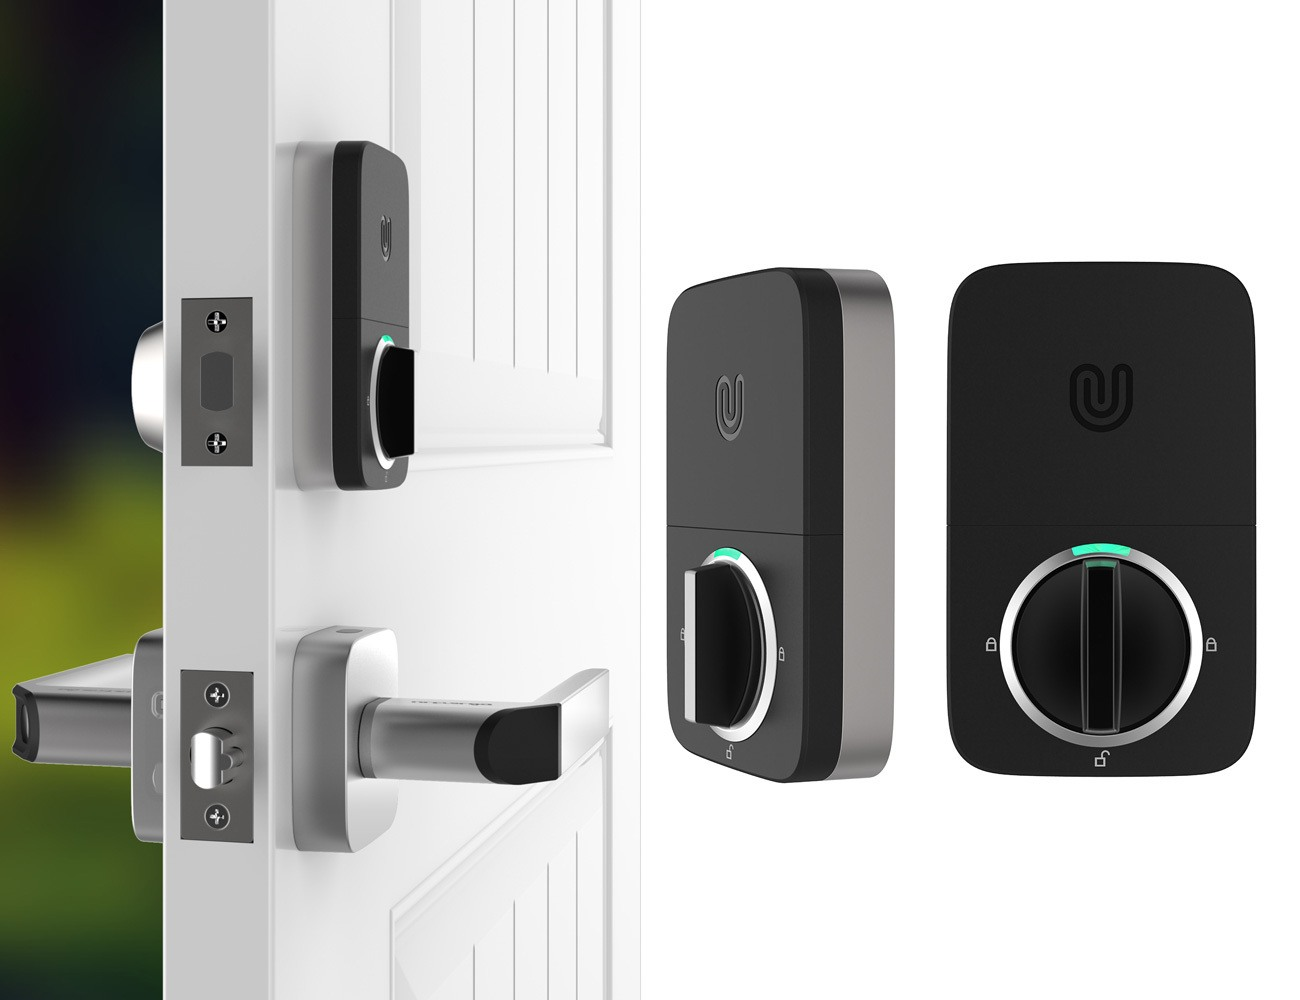 Ultraloq 3-in-1 Fingerprint Smart Lock